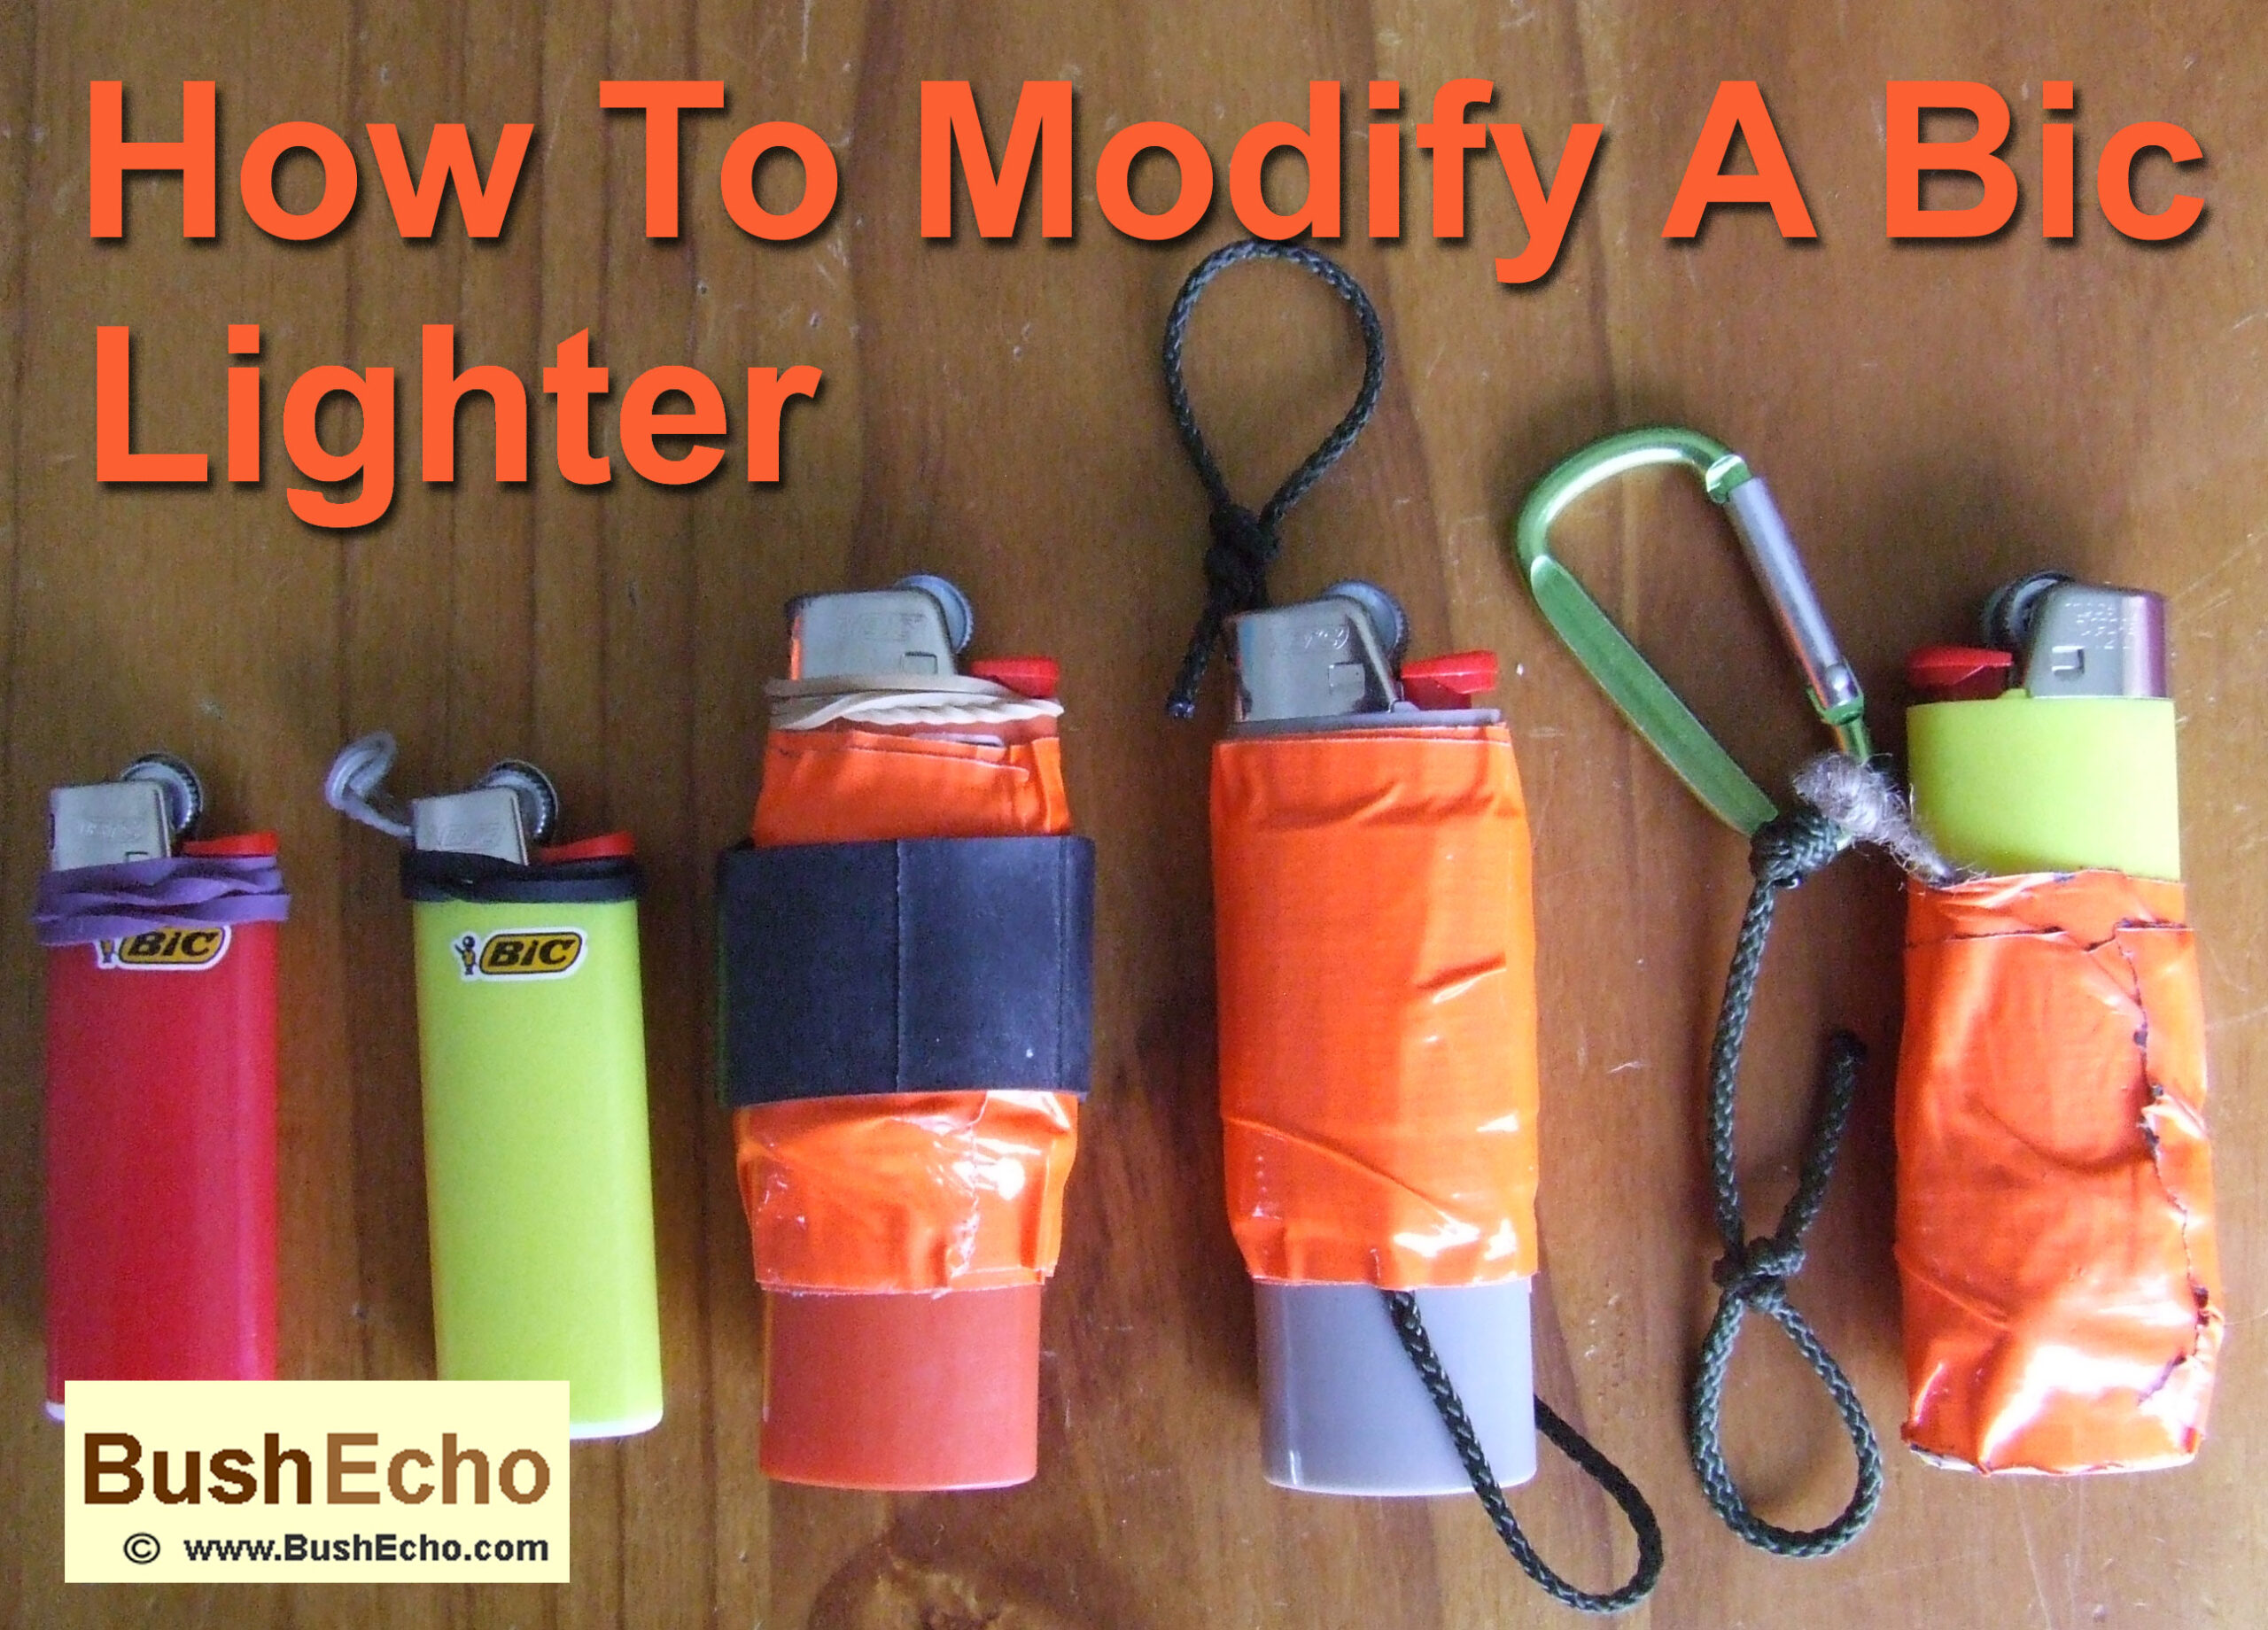 How to modify Bic lighter